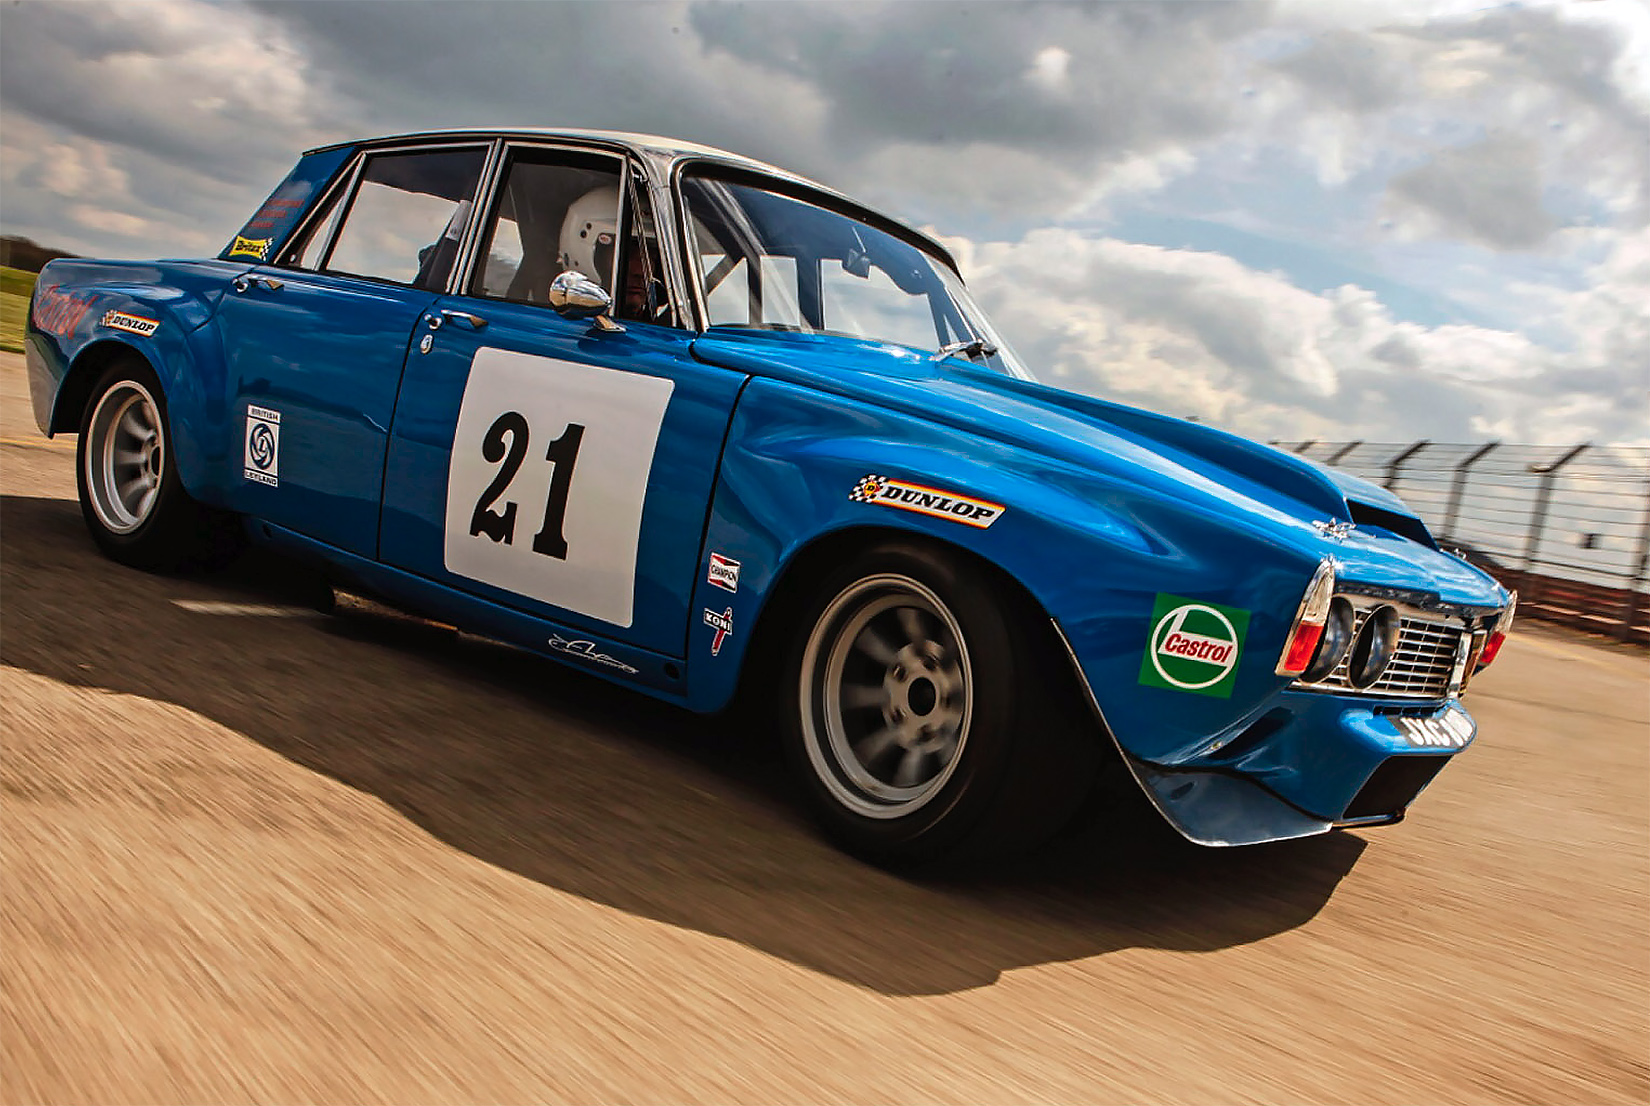 Rover P6 racing car